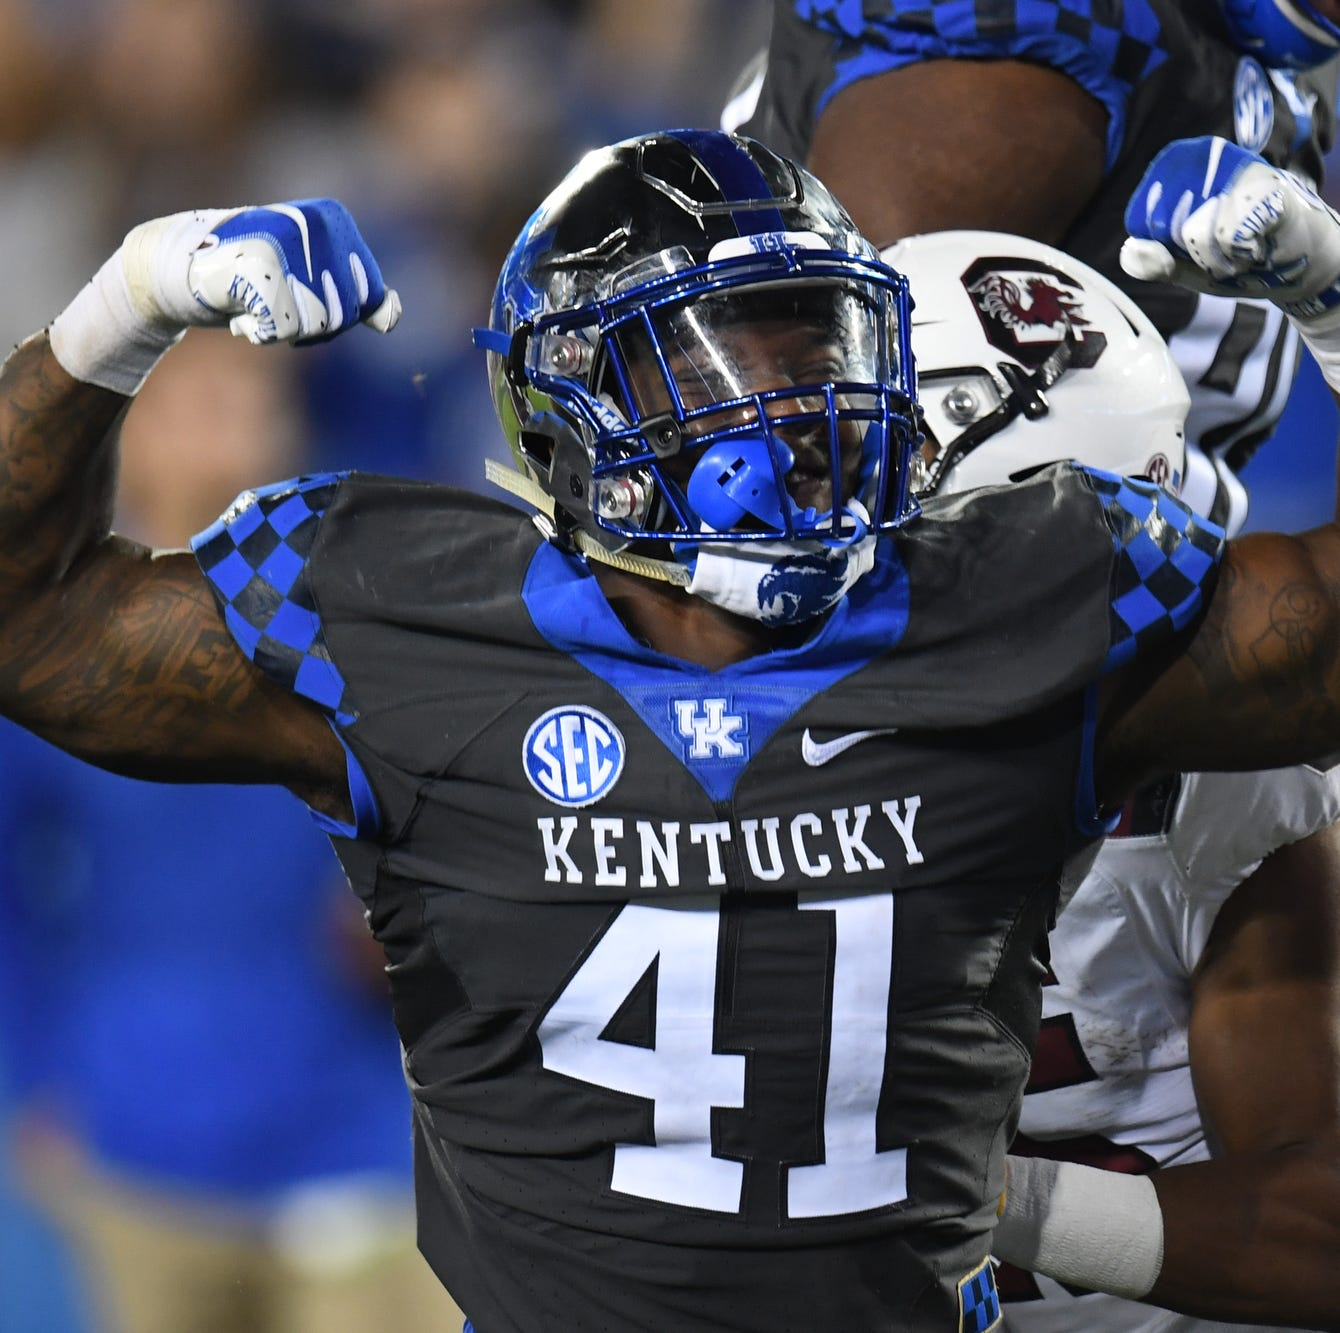 Kentucky football's defense is now the nation's stingiest